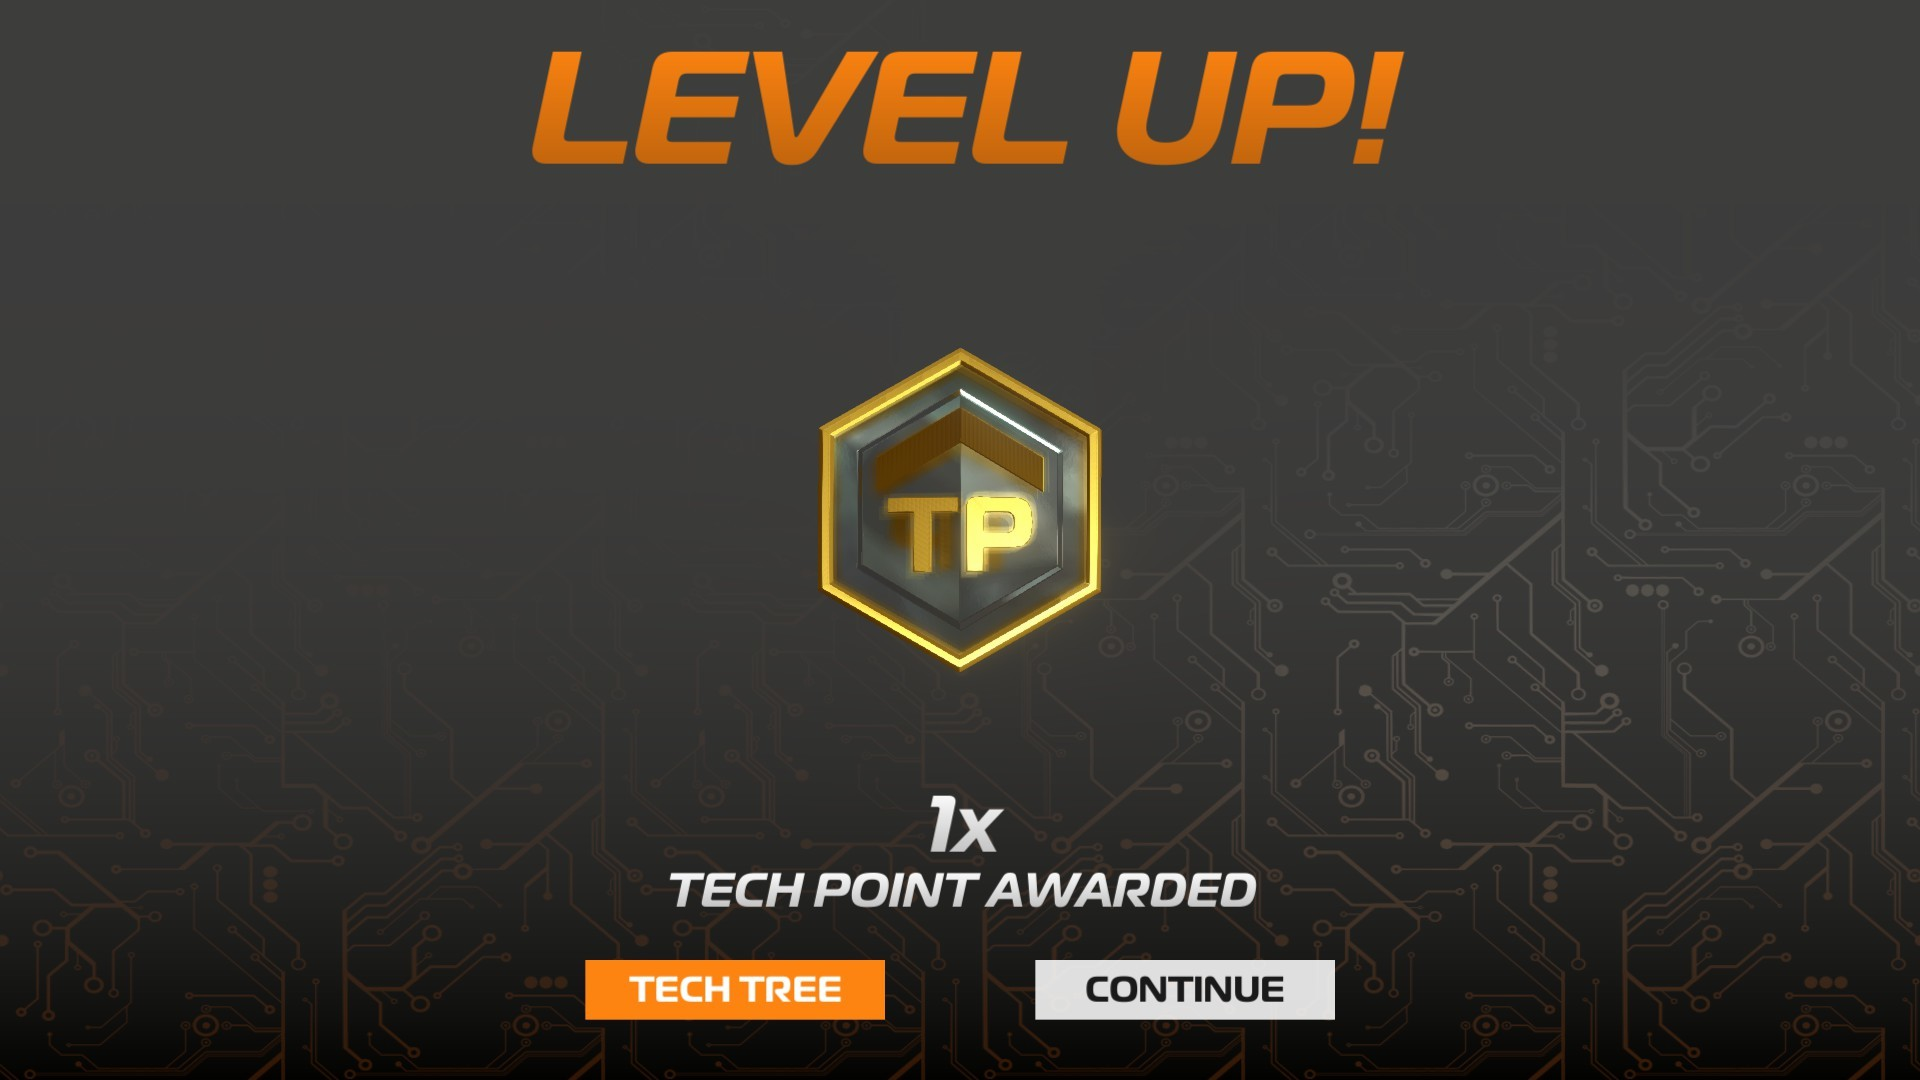 The Maximum Number Of Tech Points You Can Earn Is